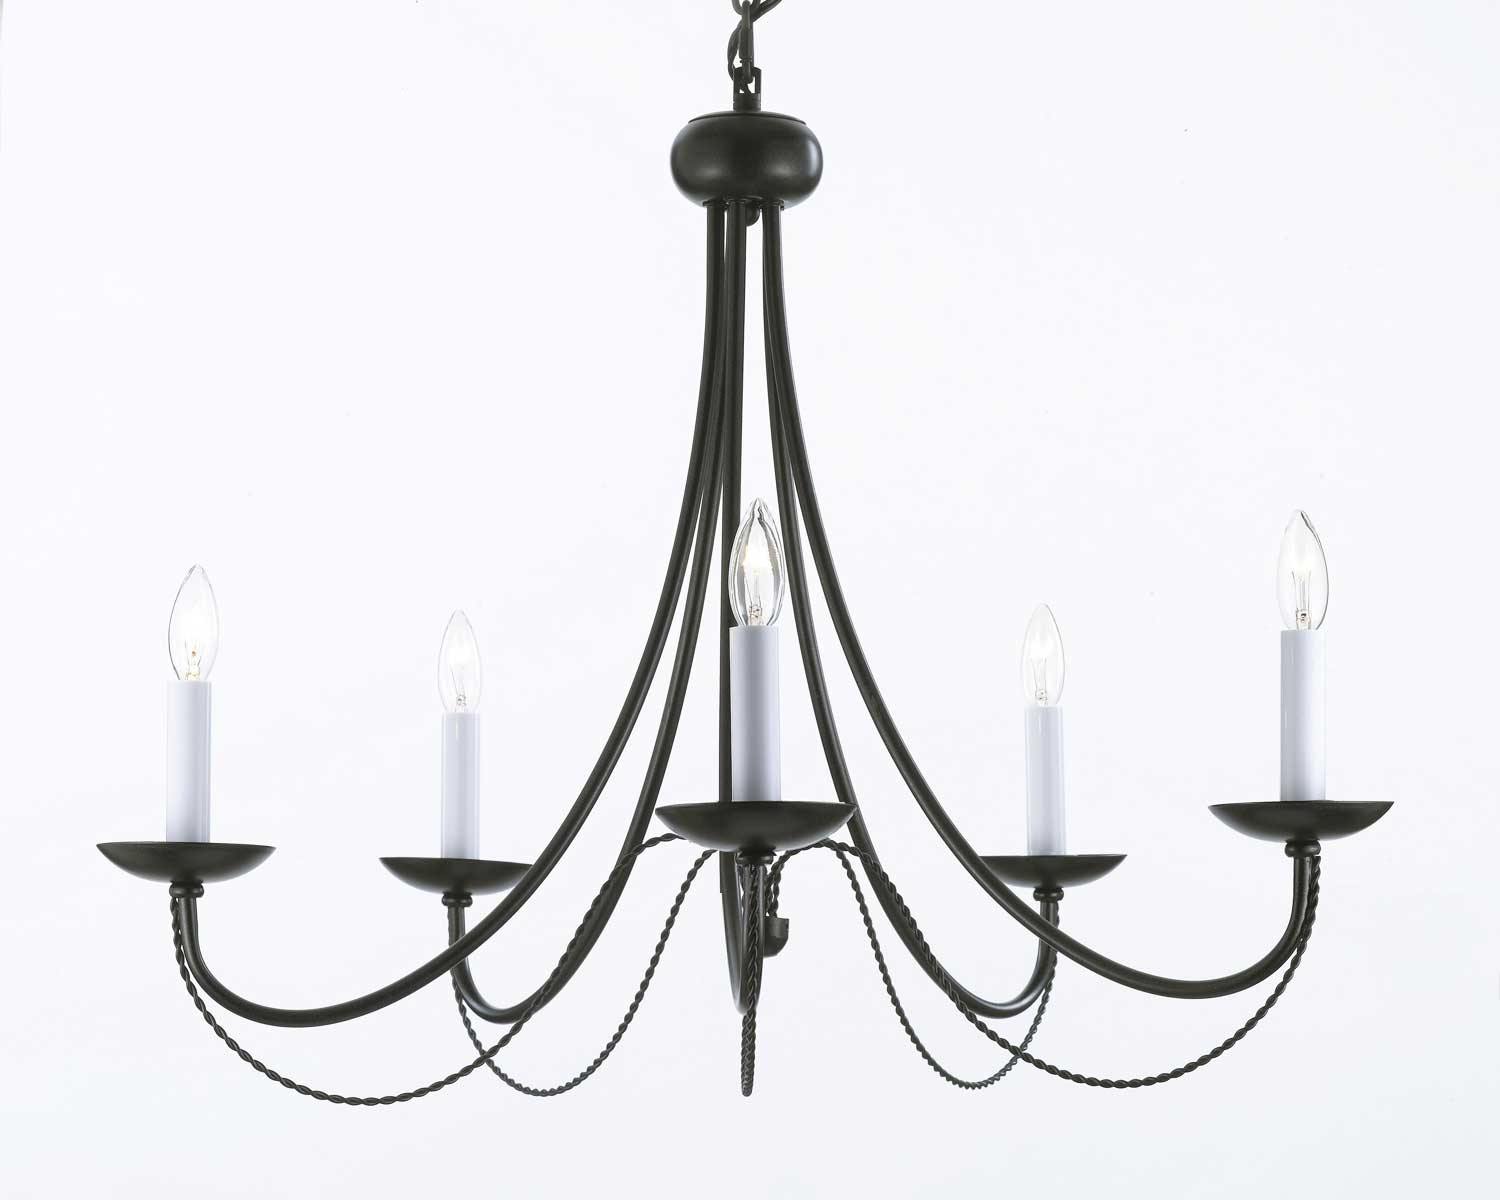 A7 4035 Gallery Wrought Without Crystal Wrought Iron Chandelier Intended For Modern Wrought Iron Chandeliers (Image 1 of 15)